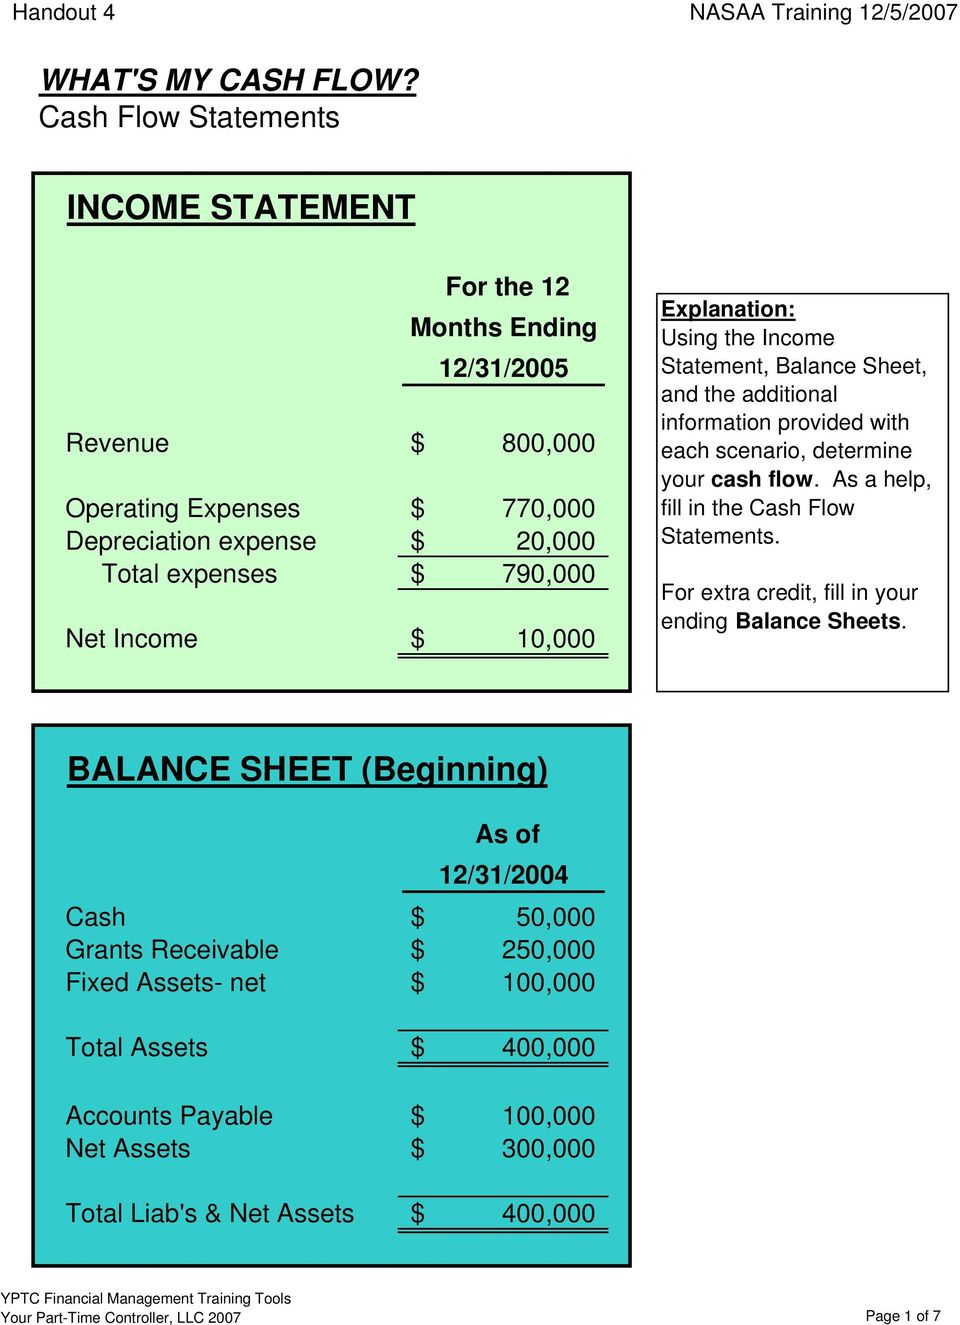 As a help, fill in the Cash Flow Statements. For extra credit, fill in your ending Balance Sheets.